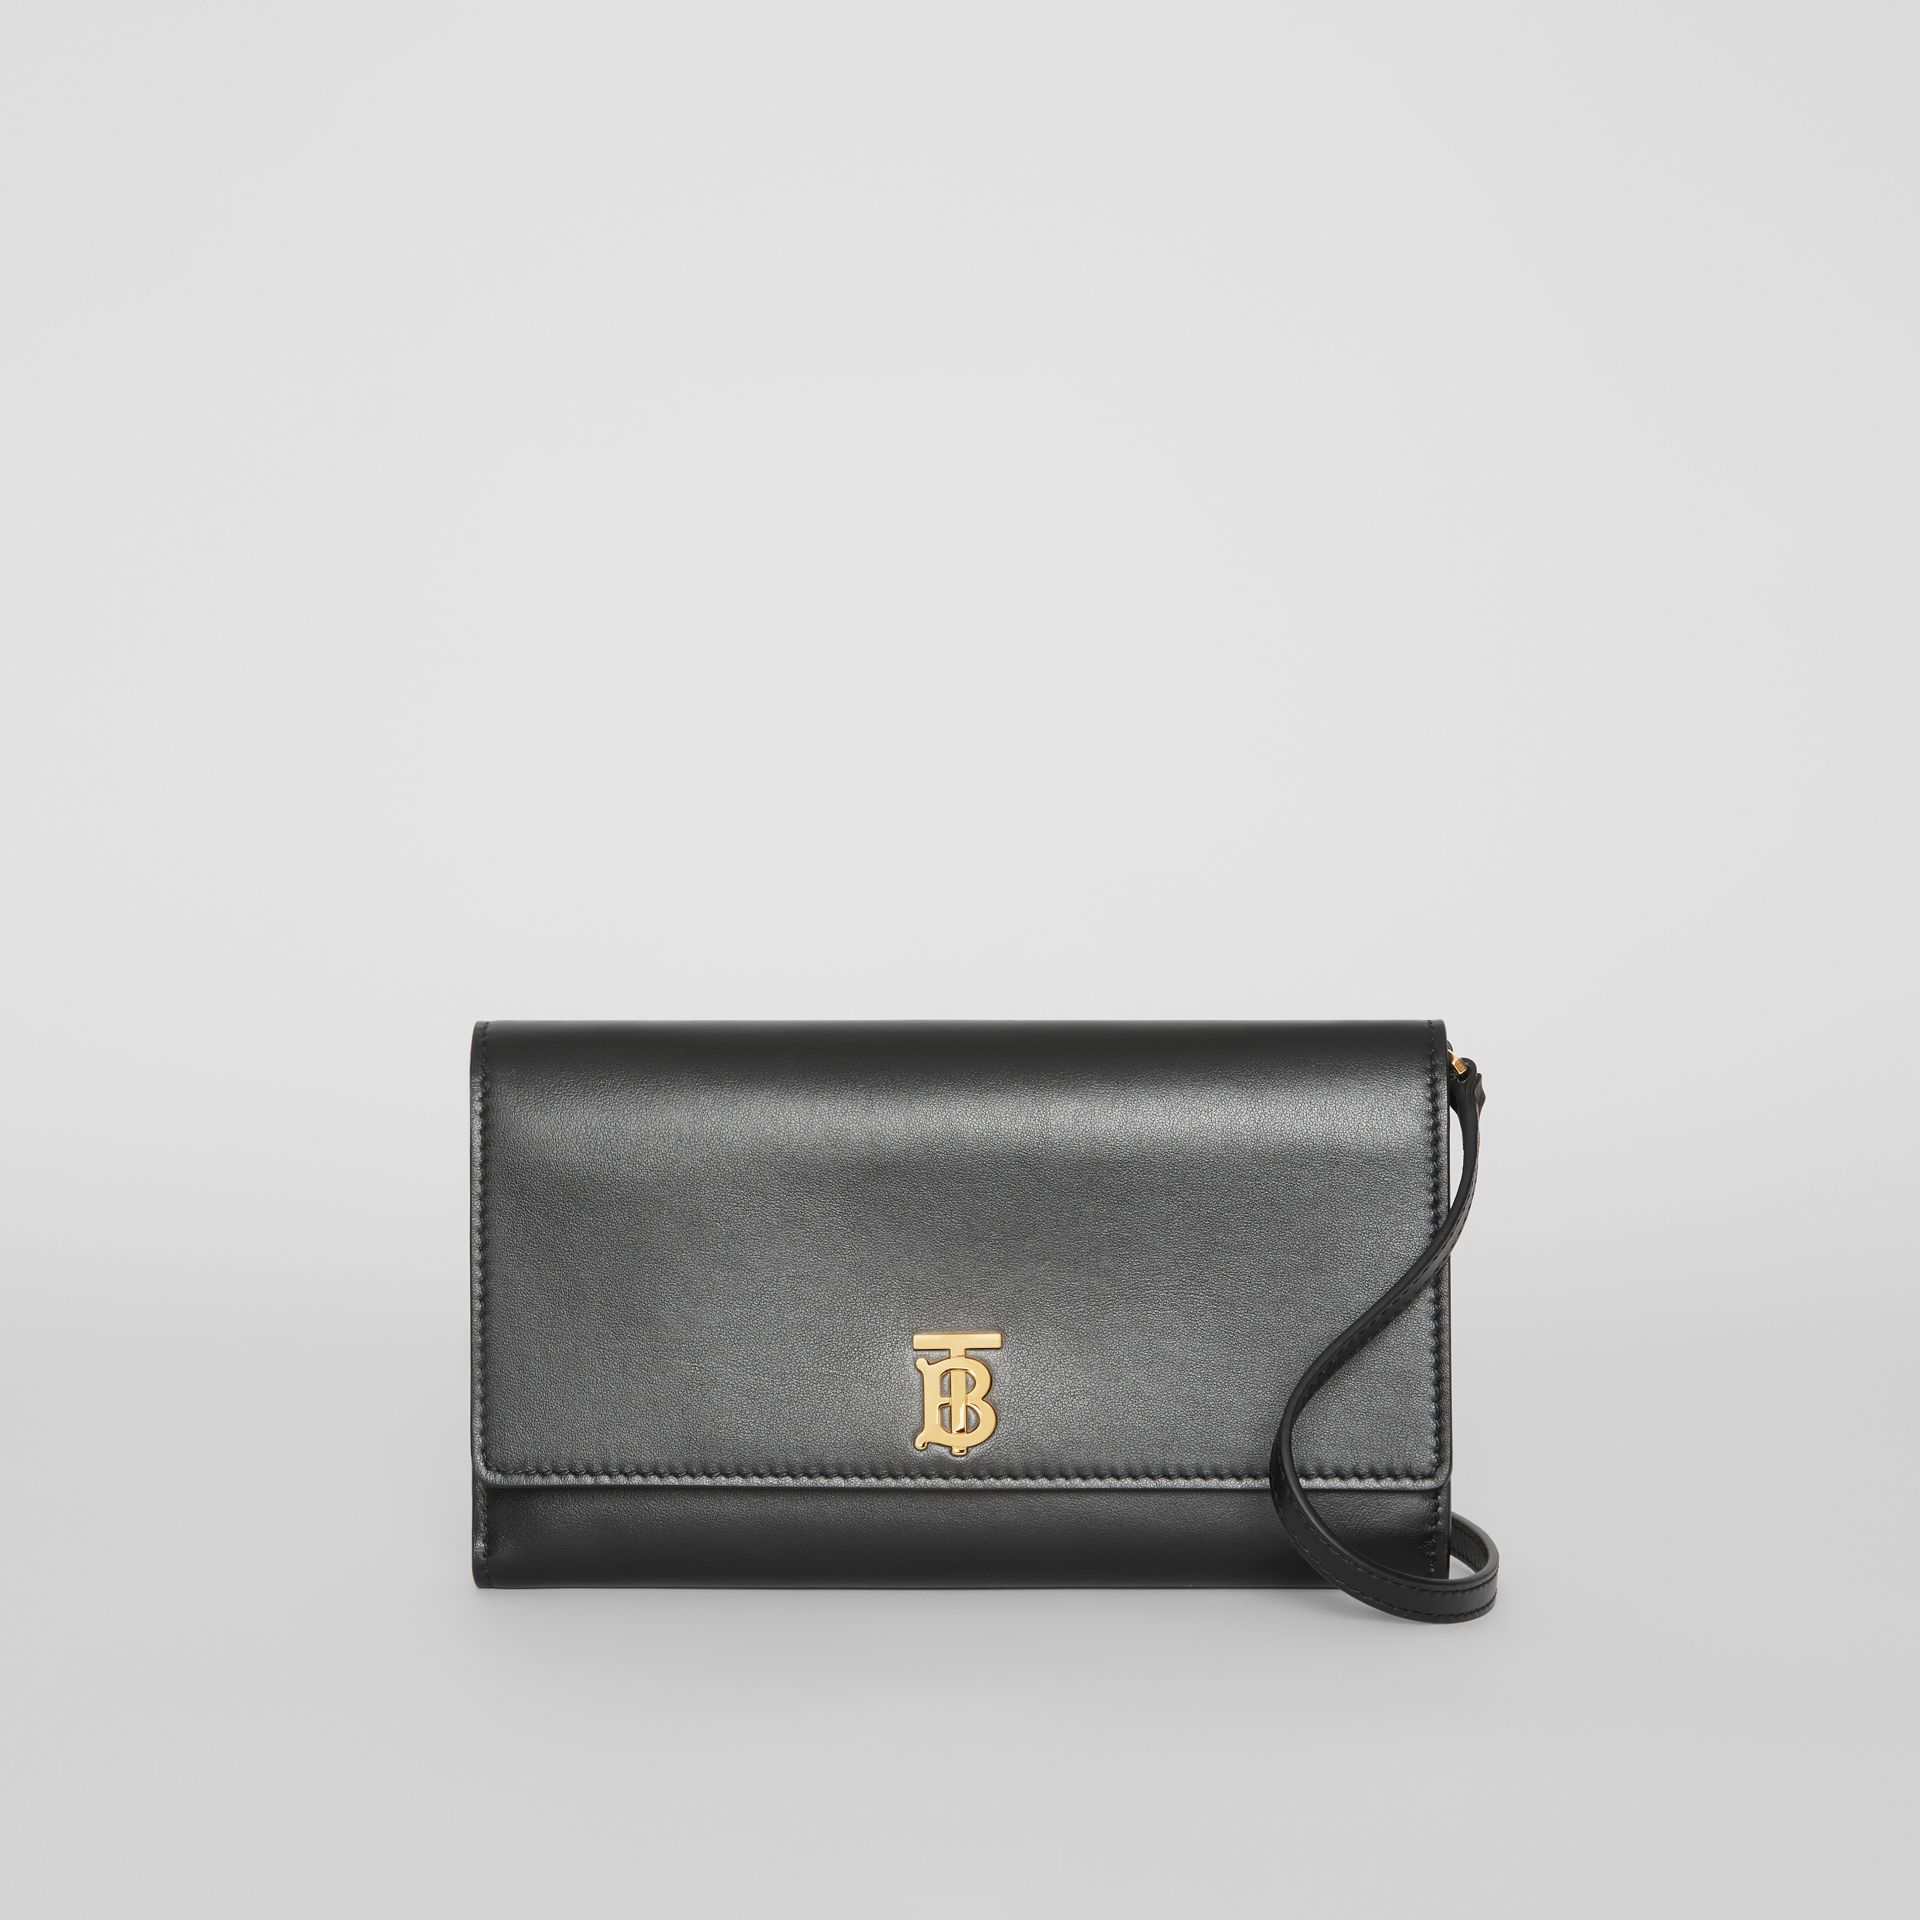 Monogram Motif Leather Wallet with Detachable Strap in Black - Women | Burberry Australia - gallery image 0